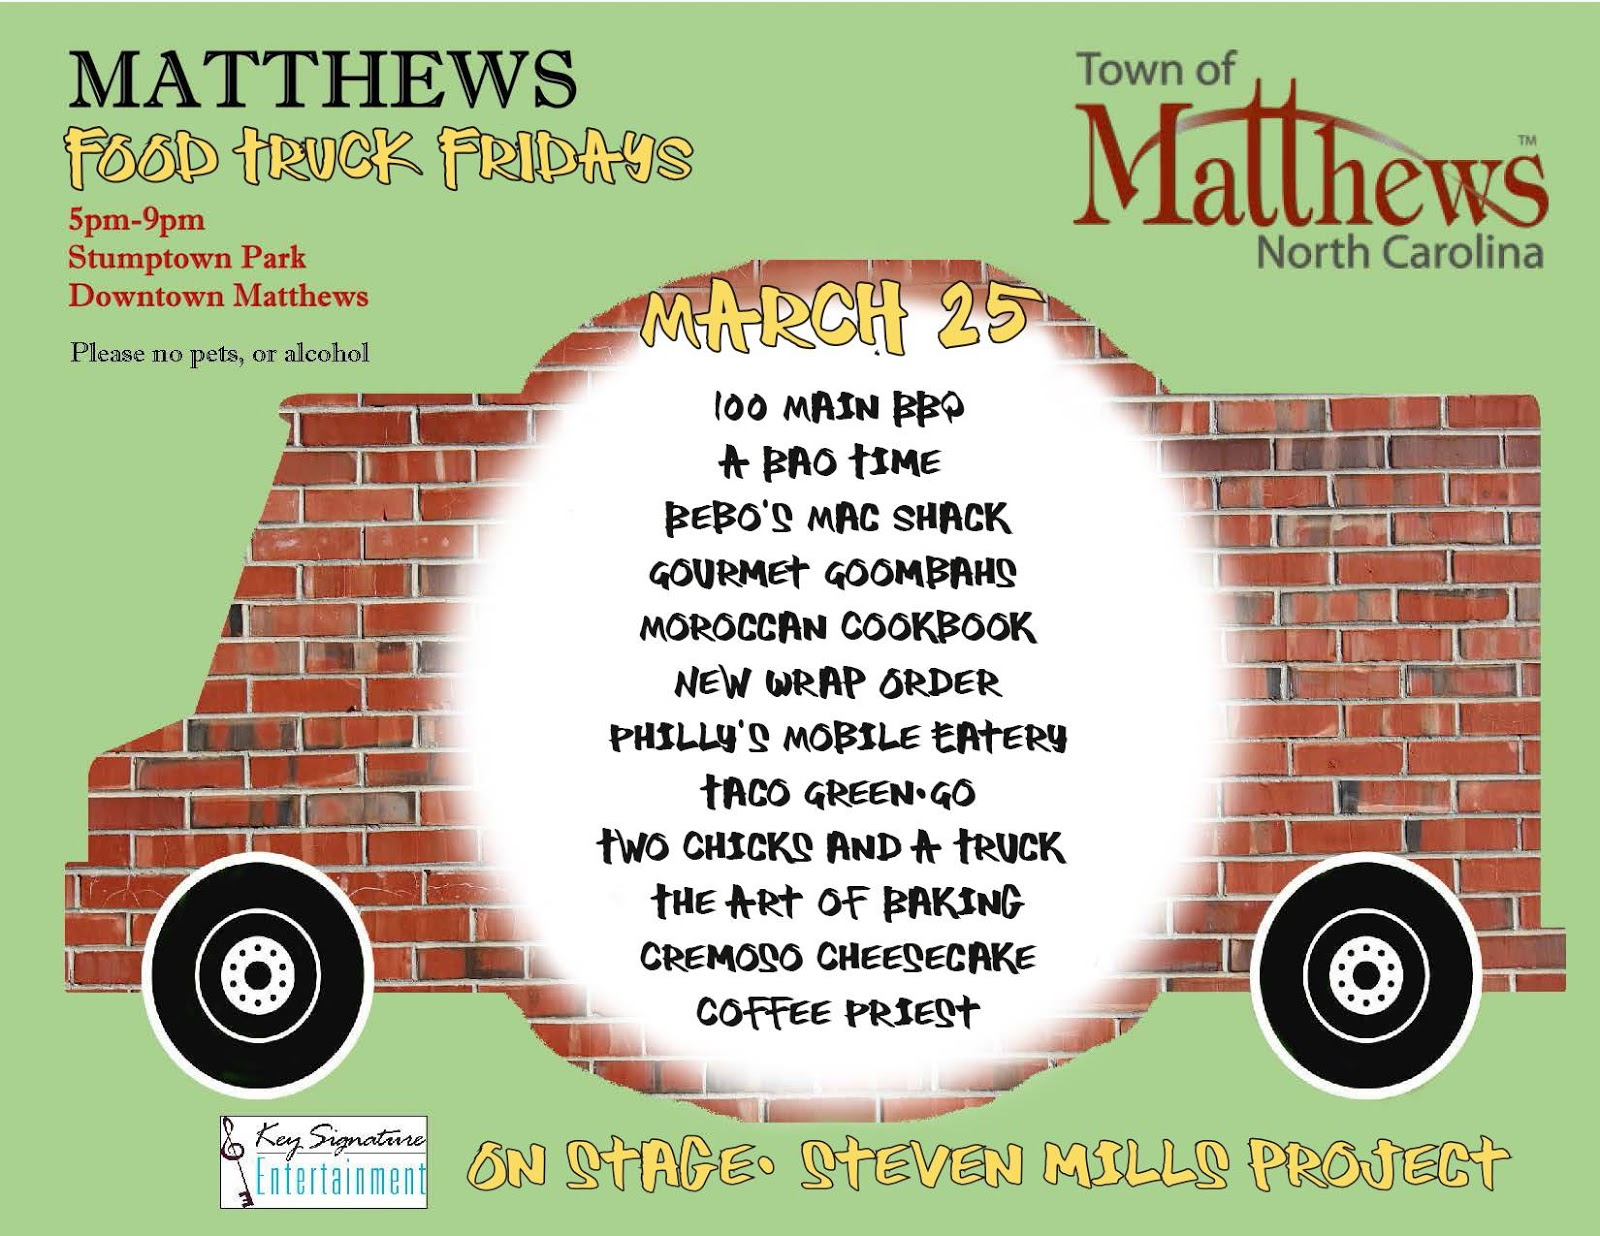 Matthews Food Truck Friday